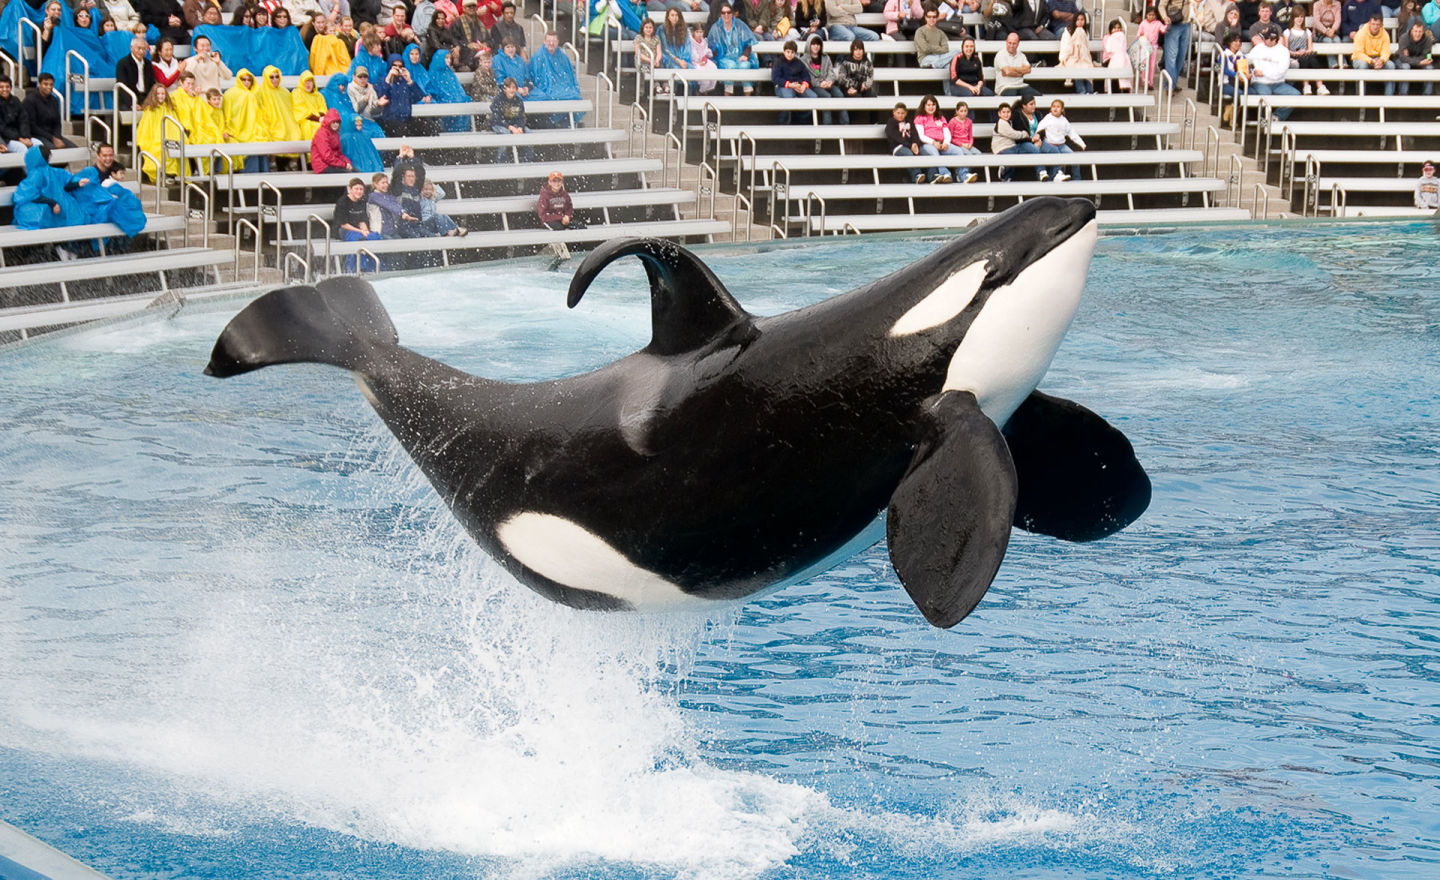 SeaWorld to End Orca Shows in San Diego by 2017